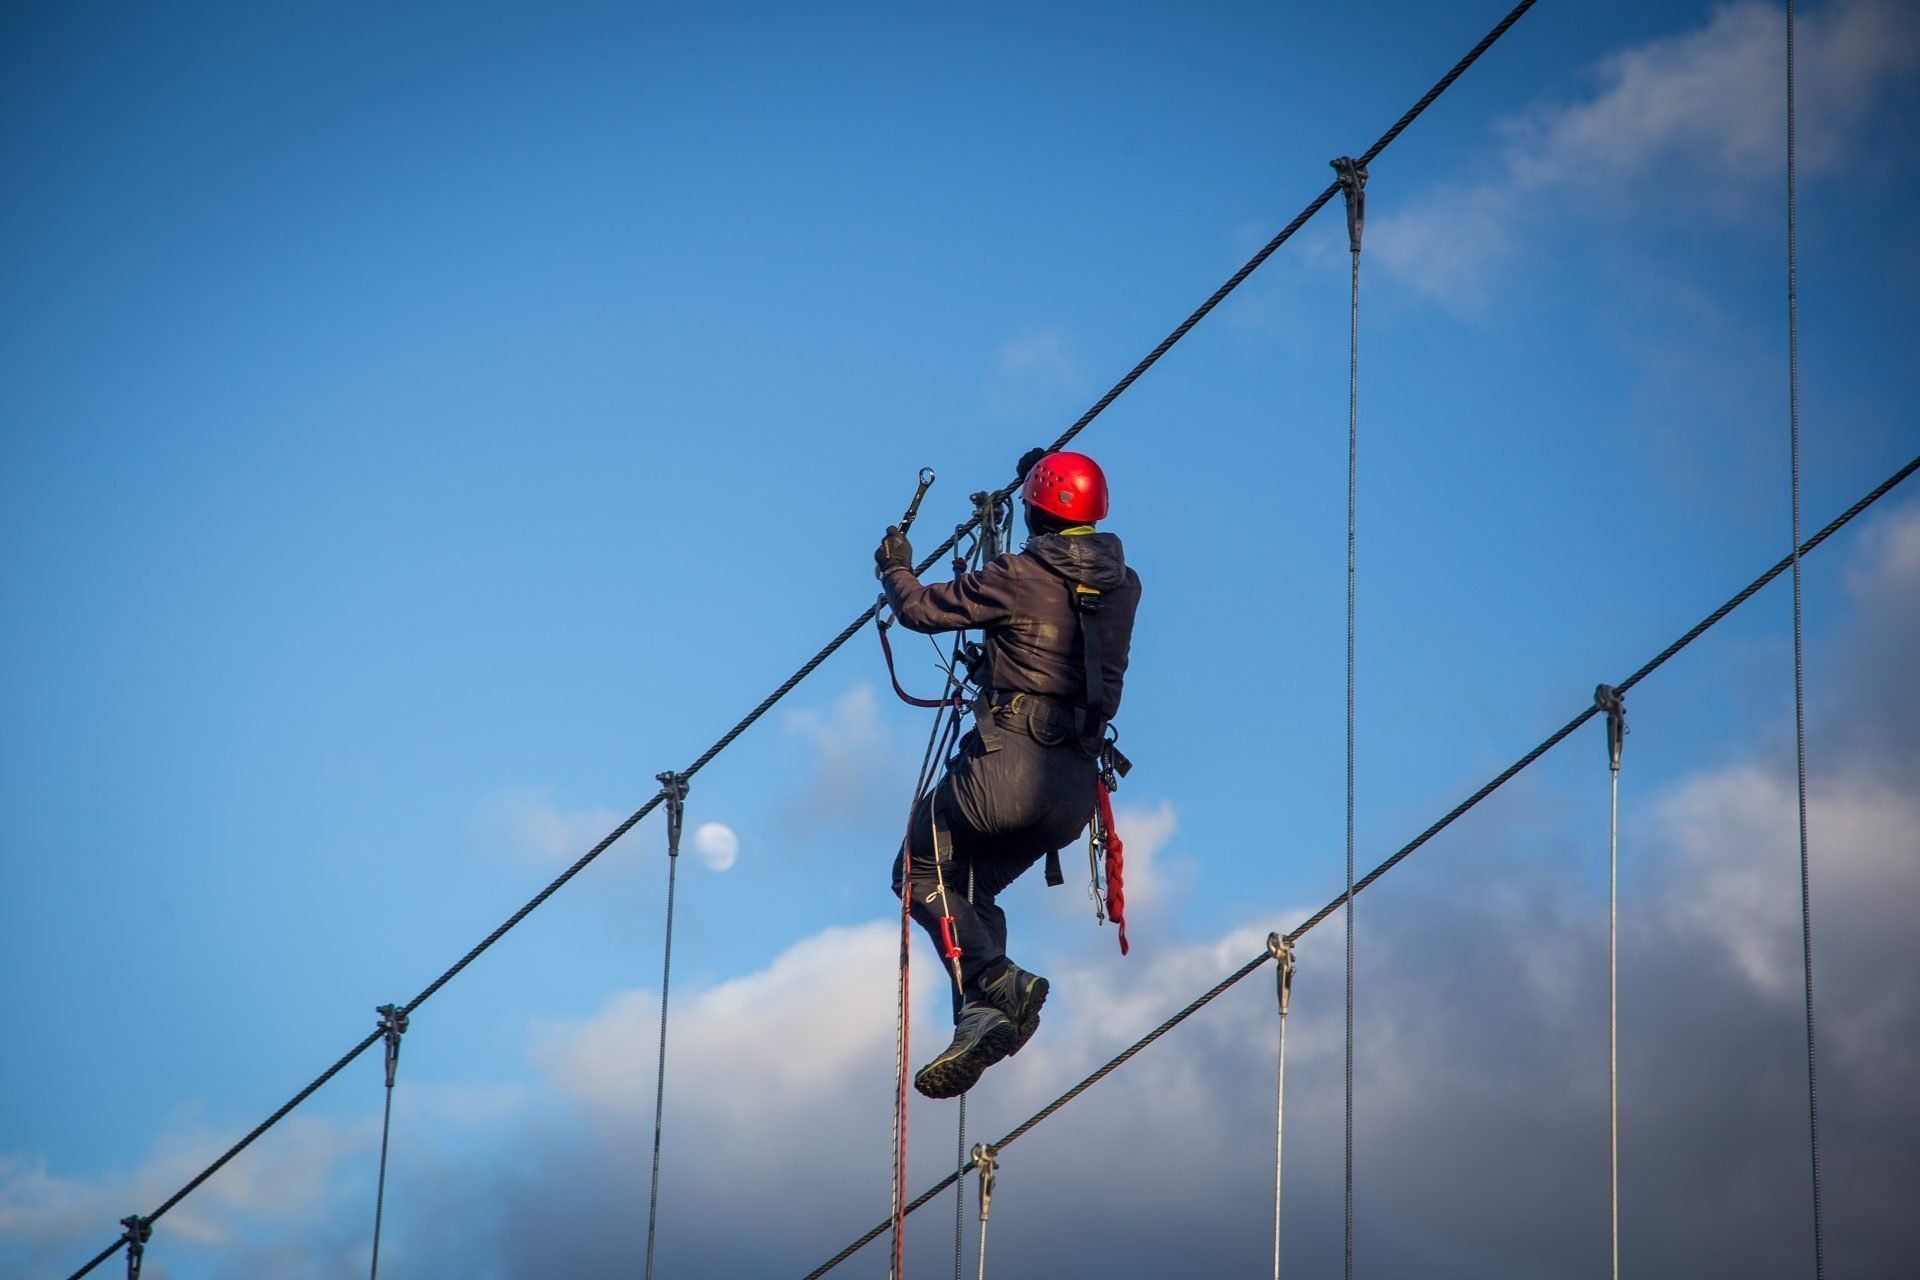 Adventure Southland, height safety, industrial rope access, working at height, maintenance, bridge maintenance, repair, inspection, bridge inspection